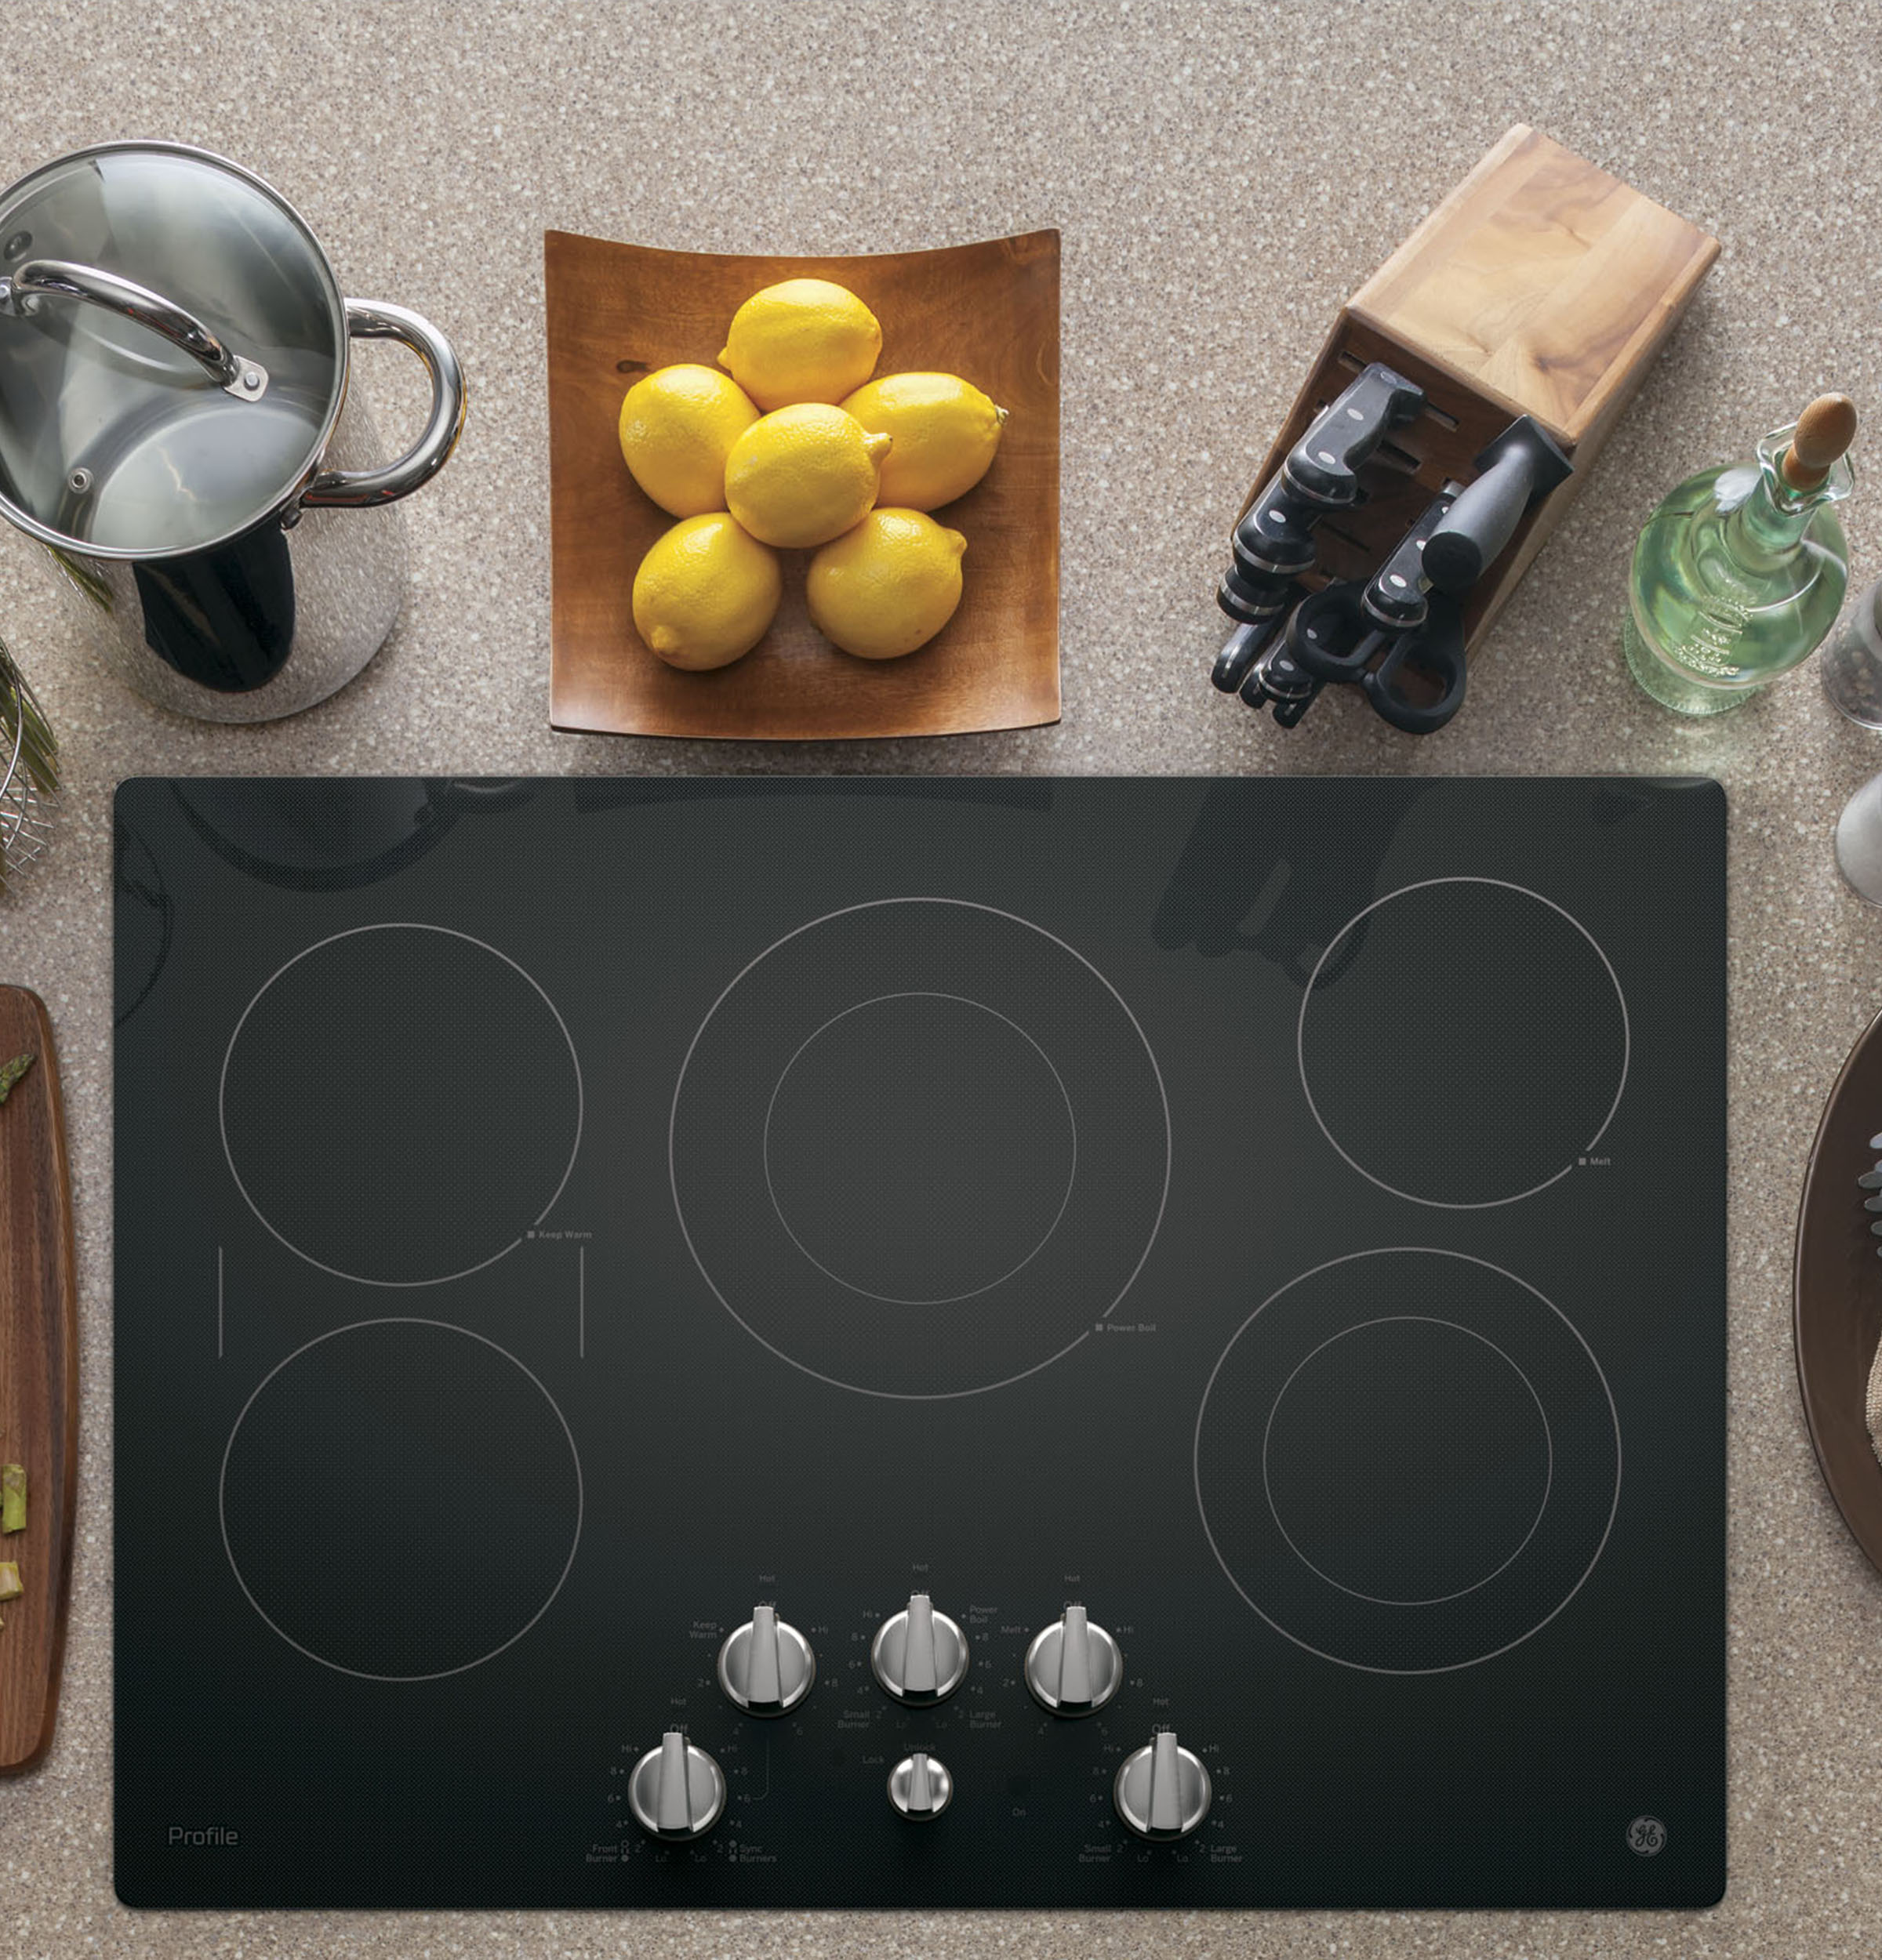 miele electric cooktop instructions